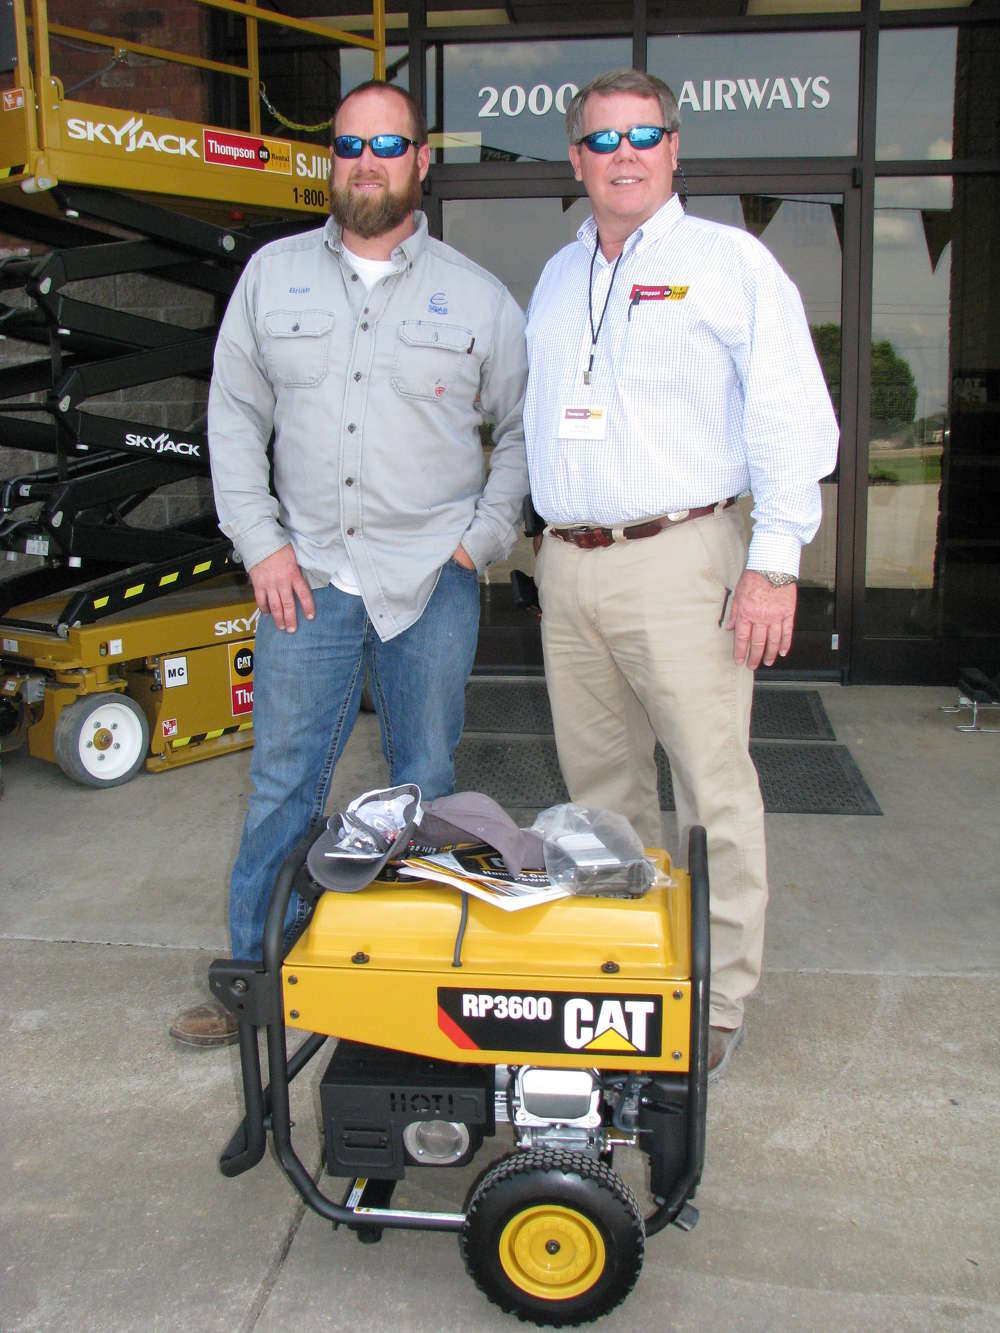 Brian Cornelison (L) of Jackson Energy Authority held the winning ticket for a Cat RP3600 generator, and received the prize from Del Reid, CAT Rental Store territory sales.